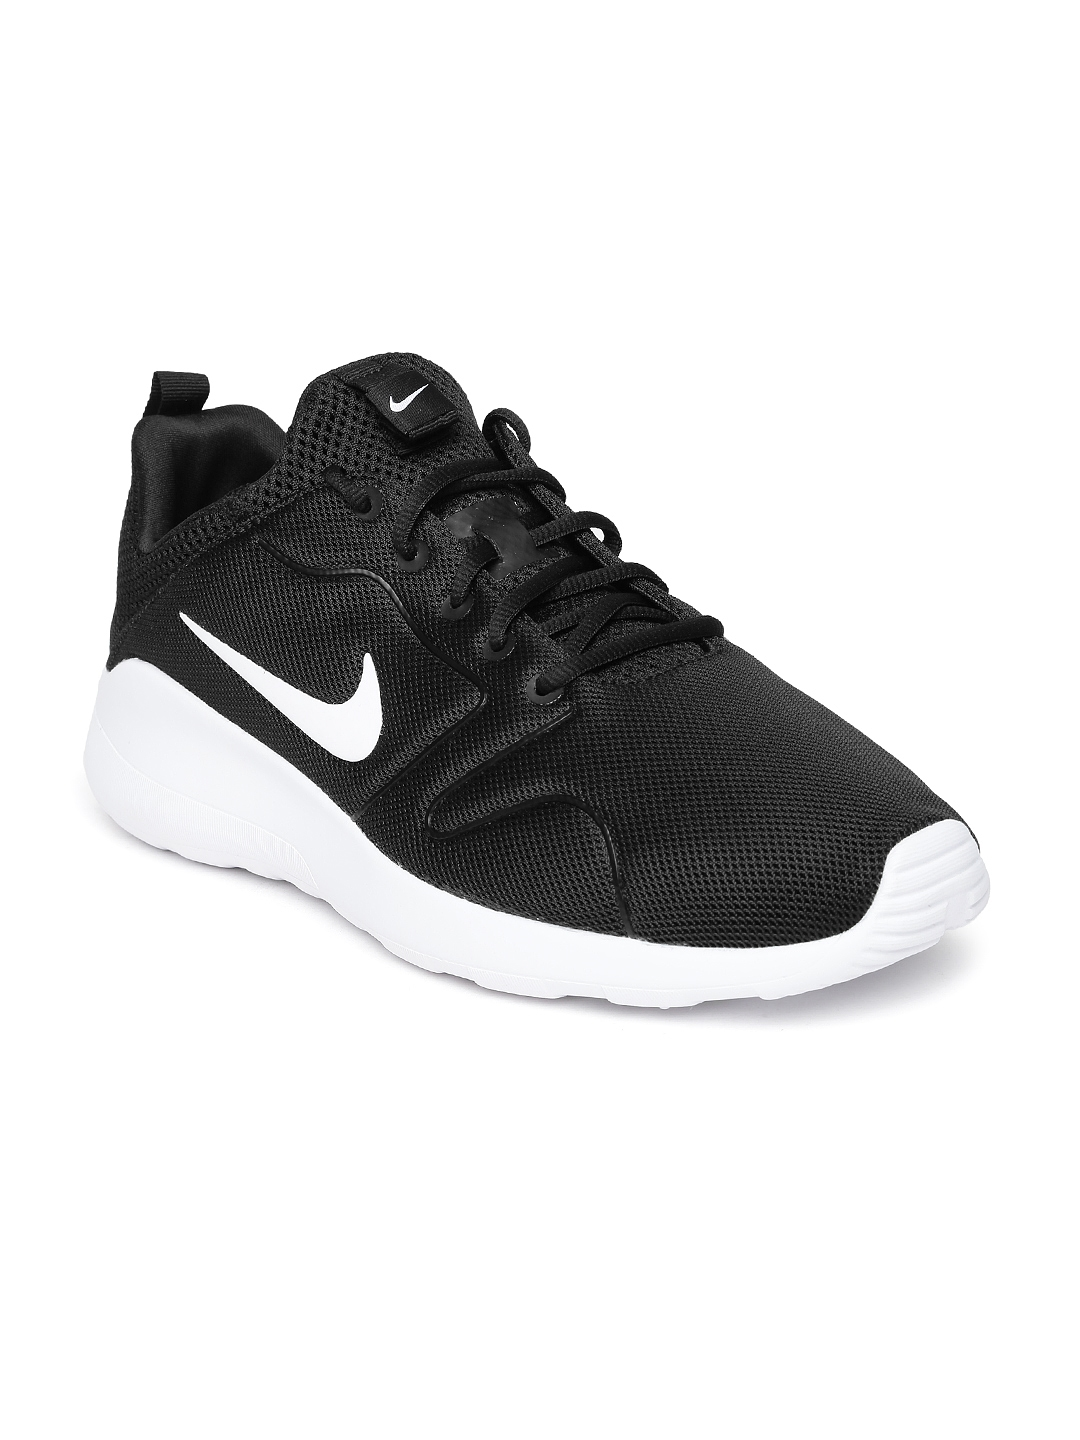 f3d0a20fff27 Buy Nike Men Black Kaishi 2.0 Sneakers - Casual Shoes for Men ...